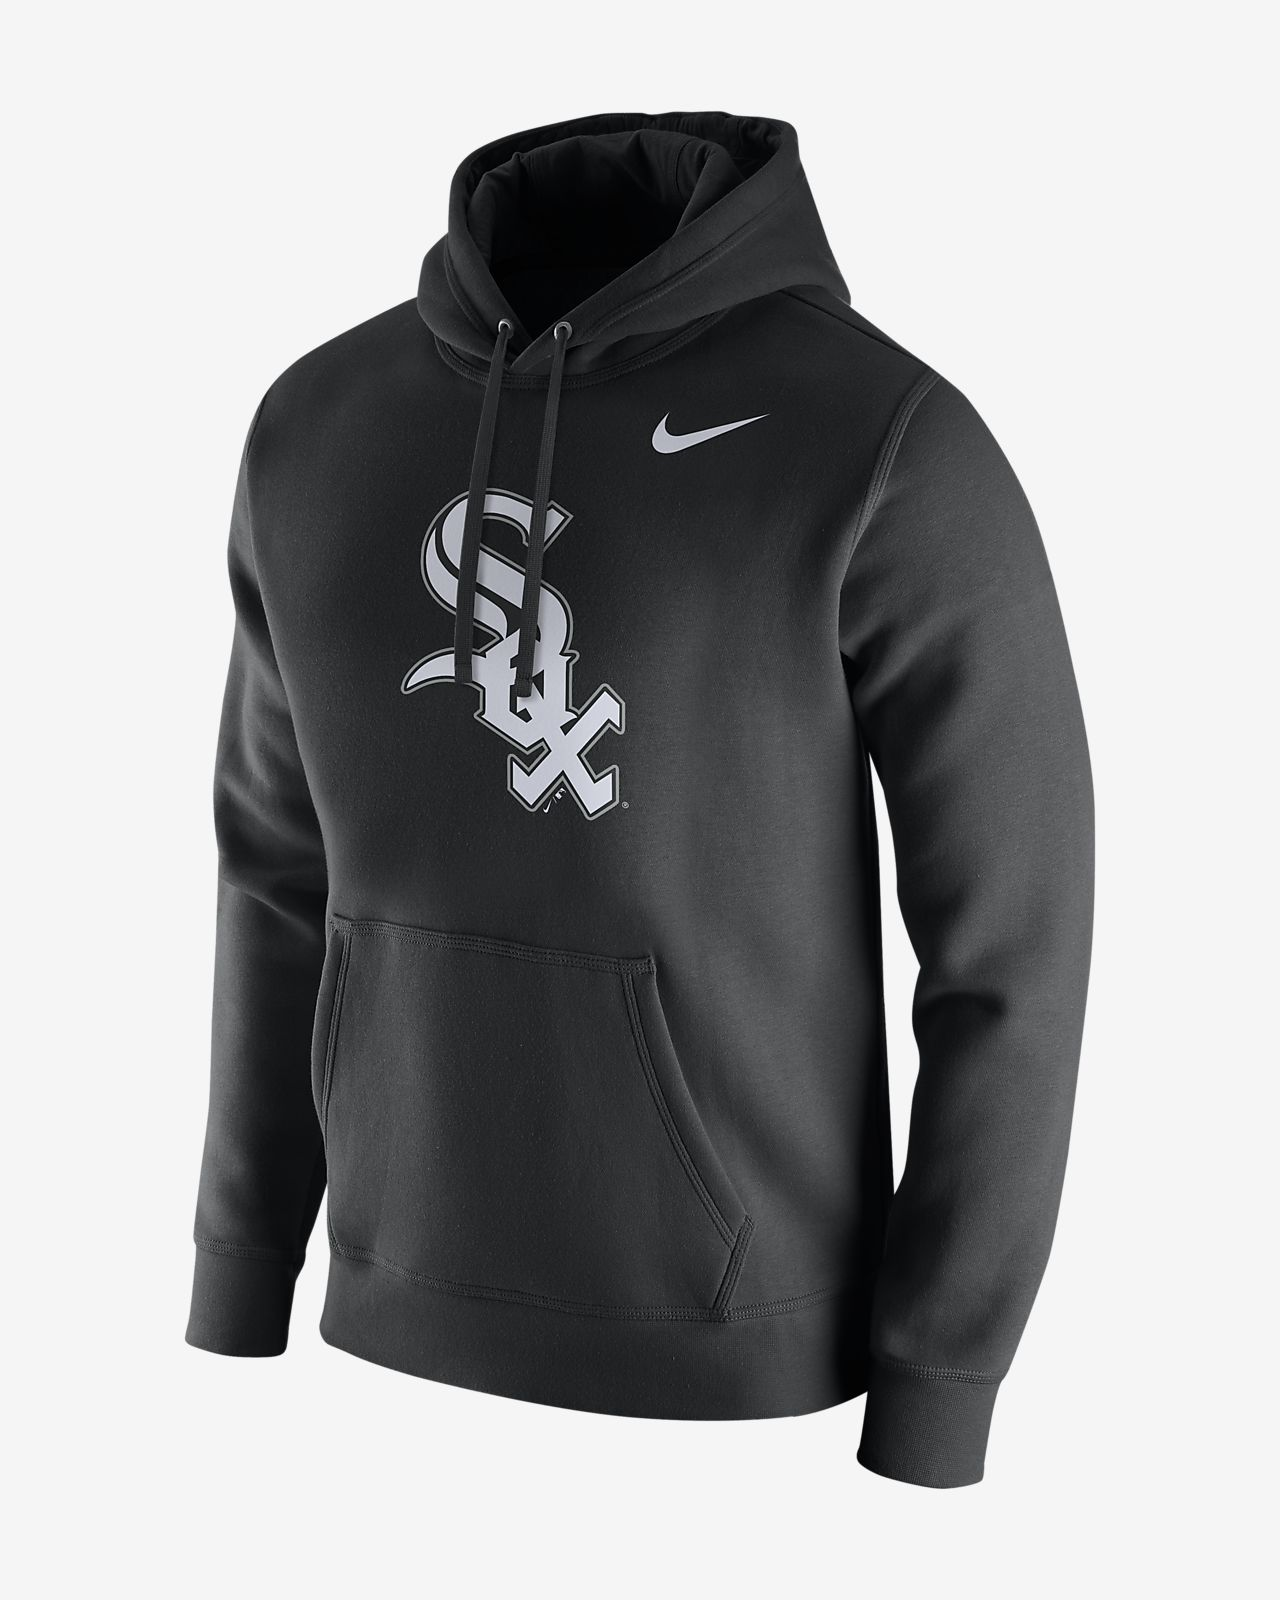 Nike Fleece Pullover (MLB White Sox) Men's Hoodies Black